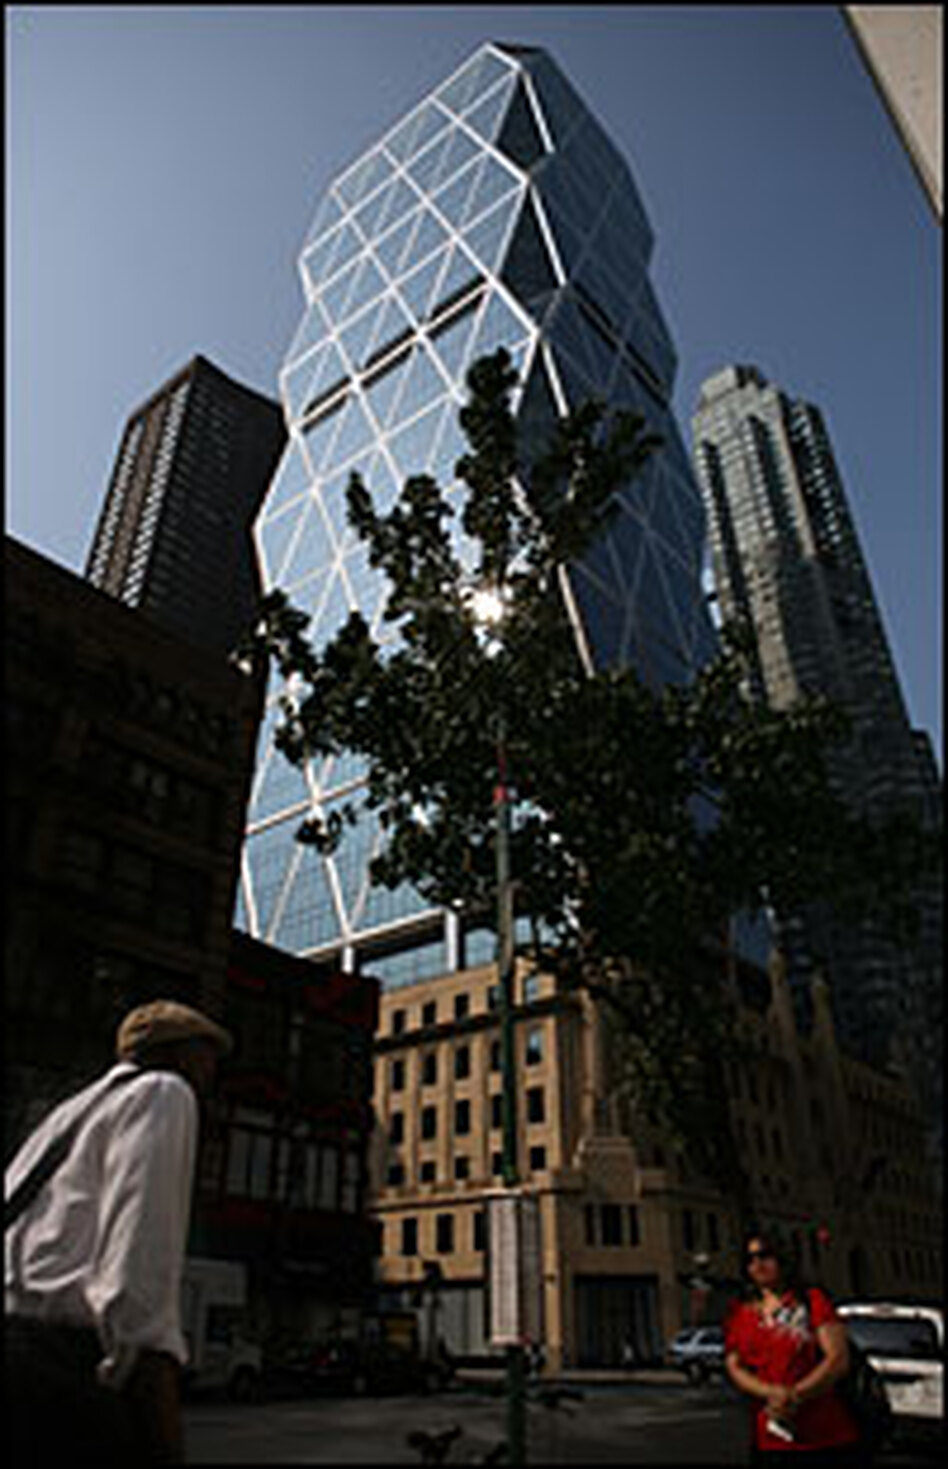 The Hearst Tower in New York City was one of the first skyscrapers in the city to be certified as environmentally friendly by LEED, the Leadership in Energy and Environmental Design.